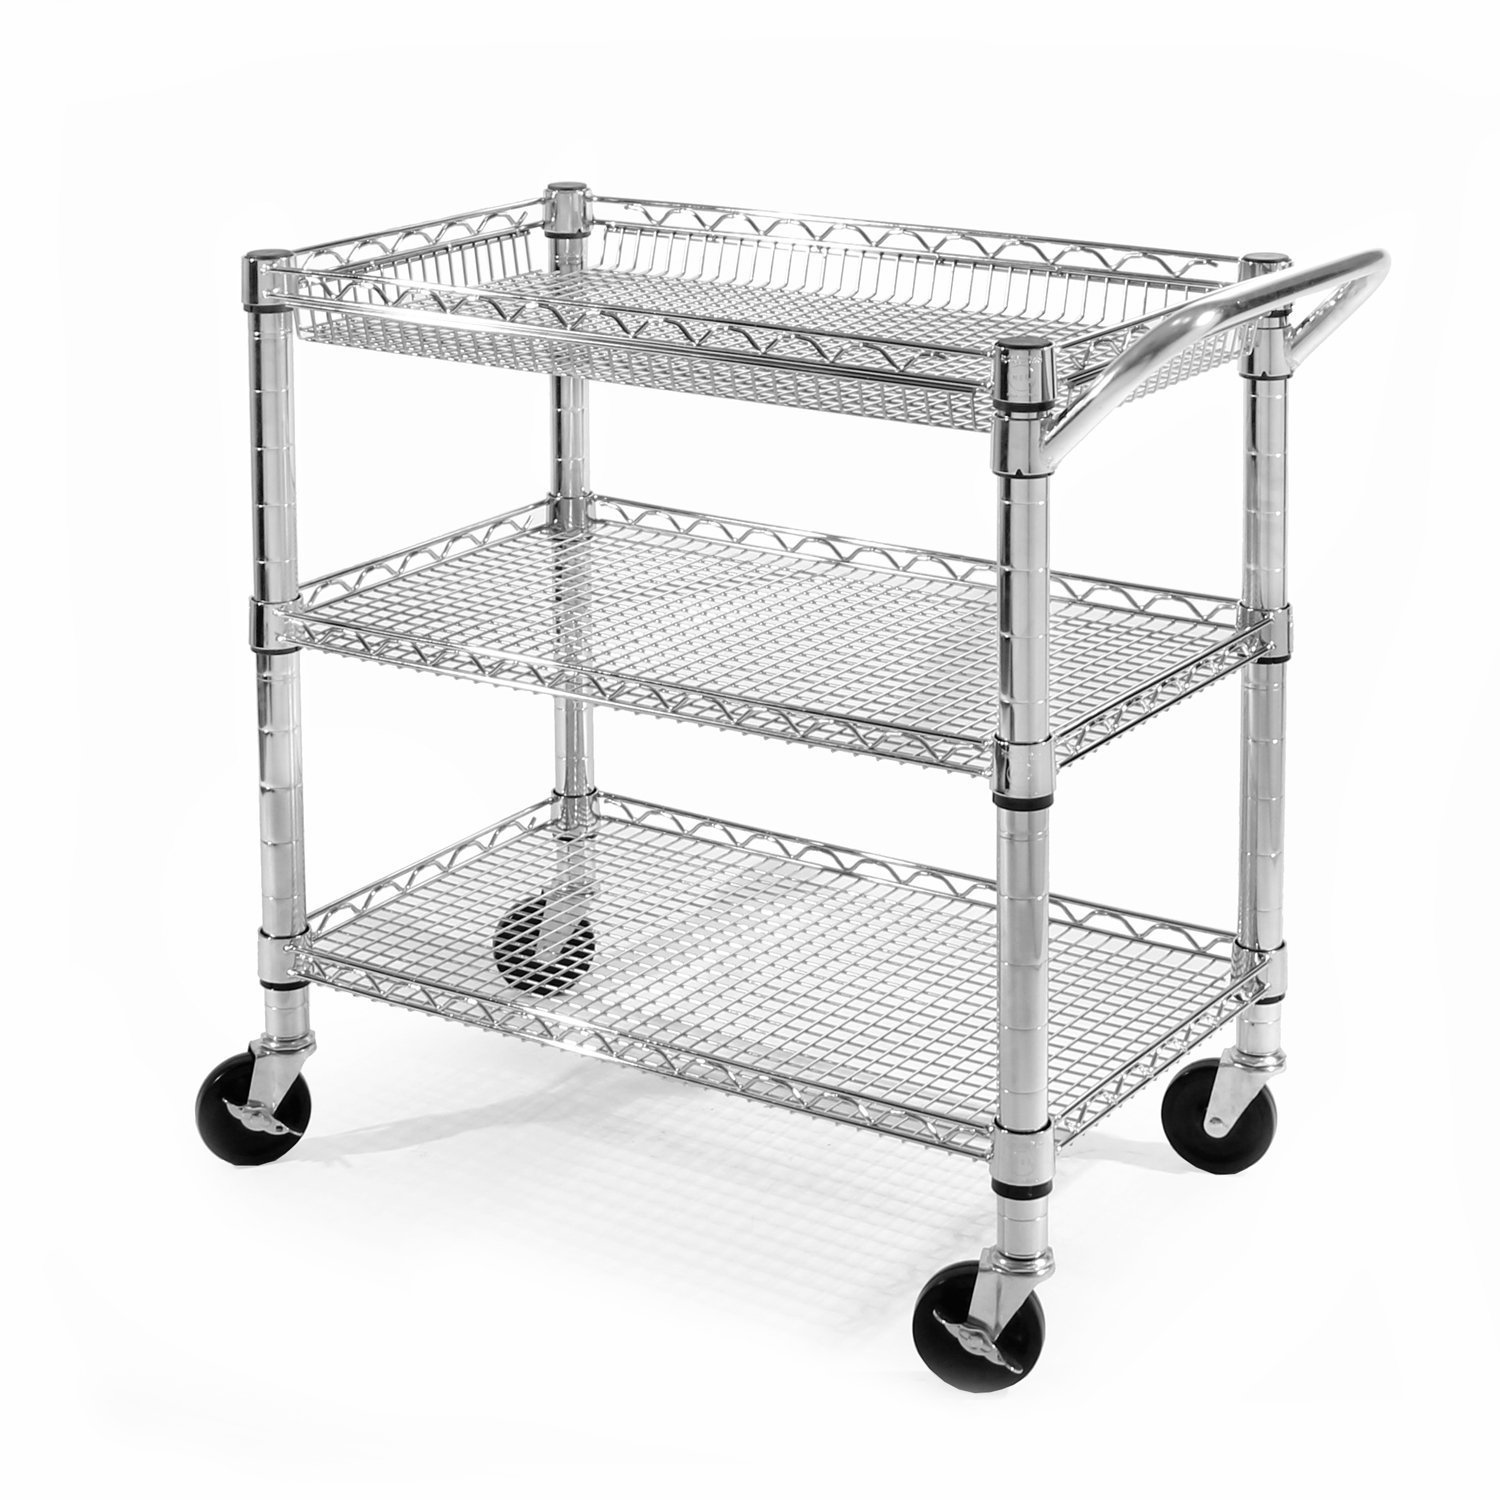 Seville Classics Heavy-Duty Commercial-Grade Utility Cart, NSF Listed, Silver